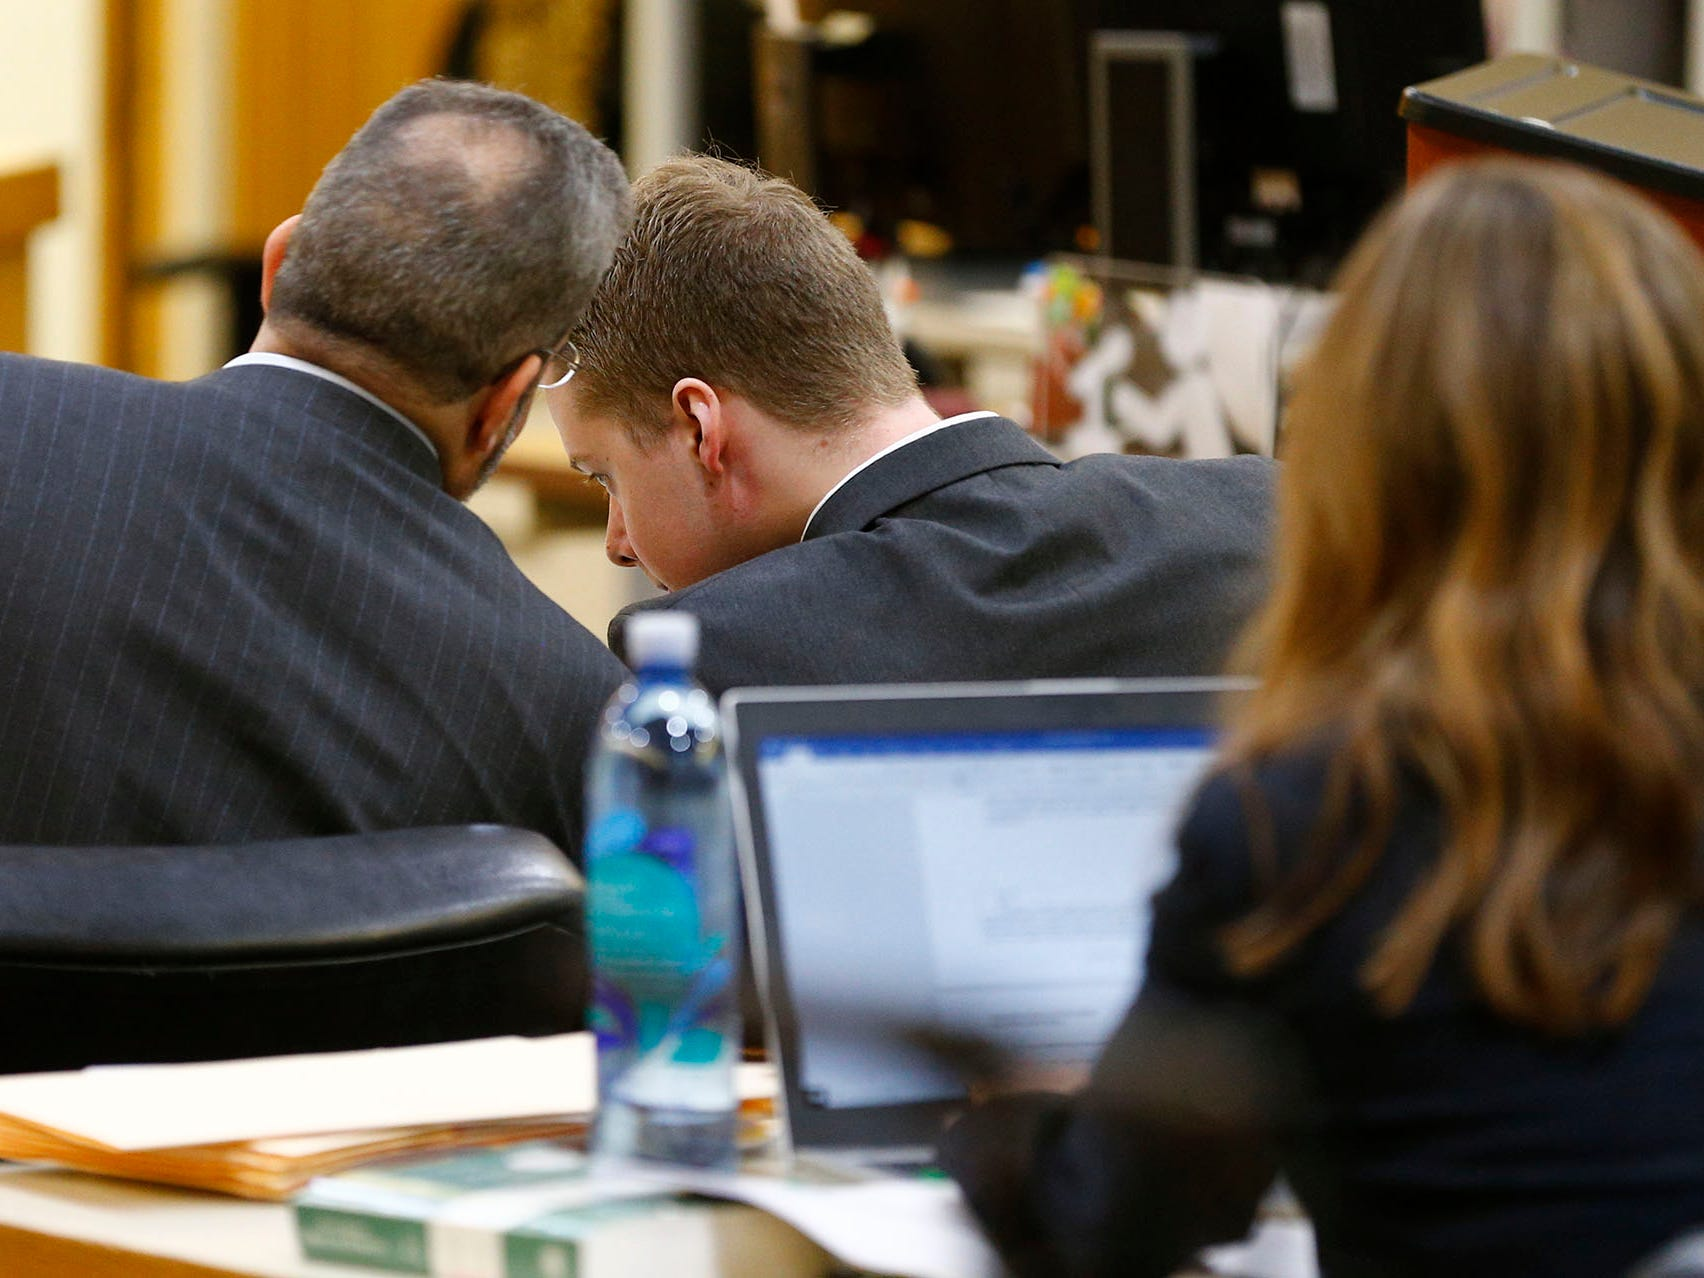 Defense attorney Carlos Diaz-Cobo (left) confers with his client Liam McAtasney in State Superior Court Judge Richard English's courtroom Thursday, February 21, 2019.  McAtasney is on trial on charges that he murdered Sarah Stern in 2016.